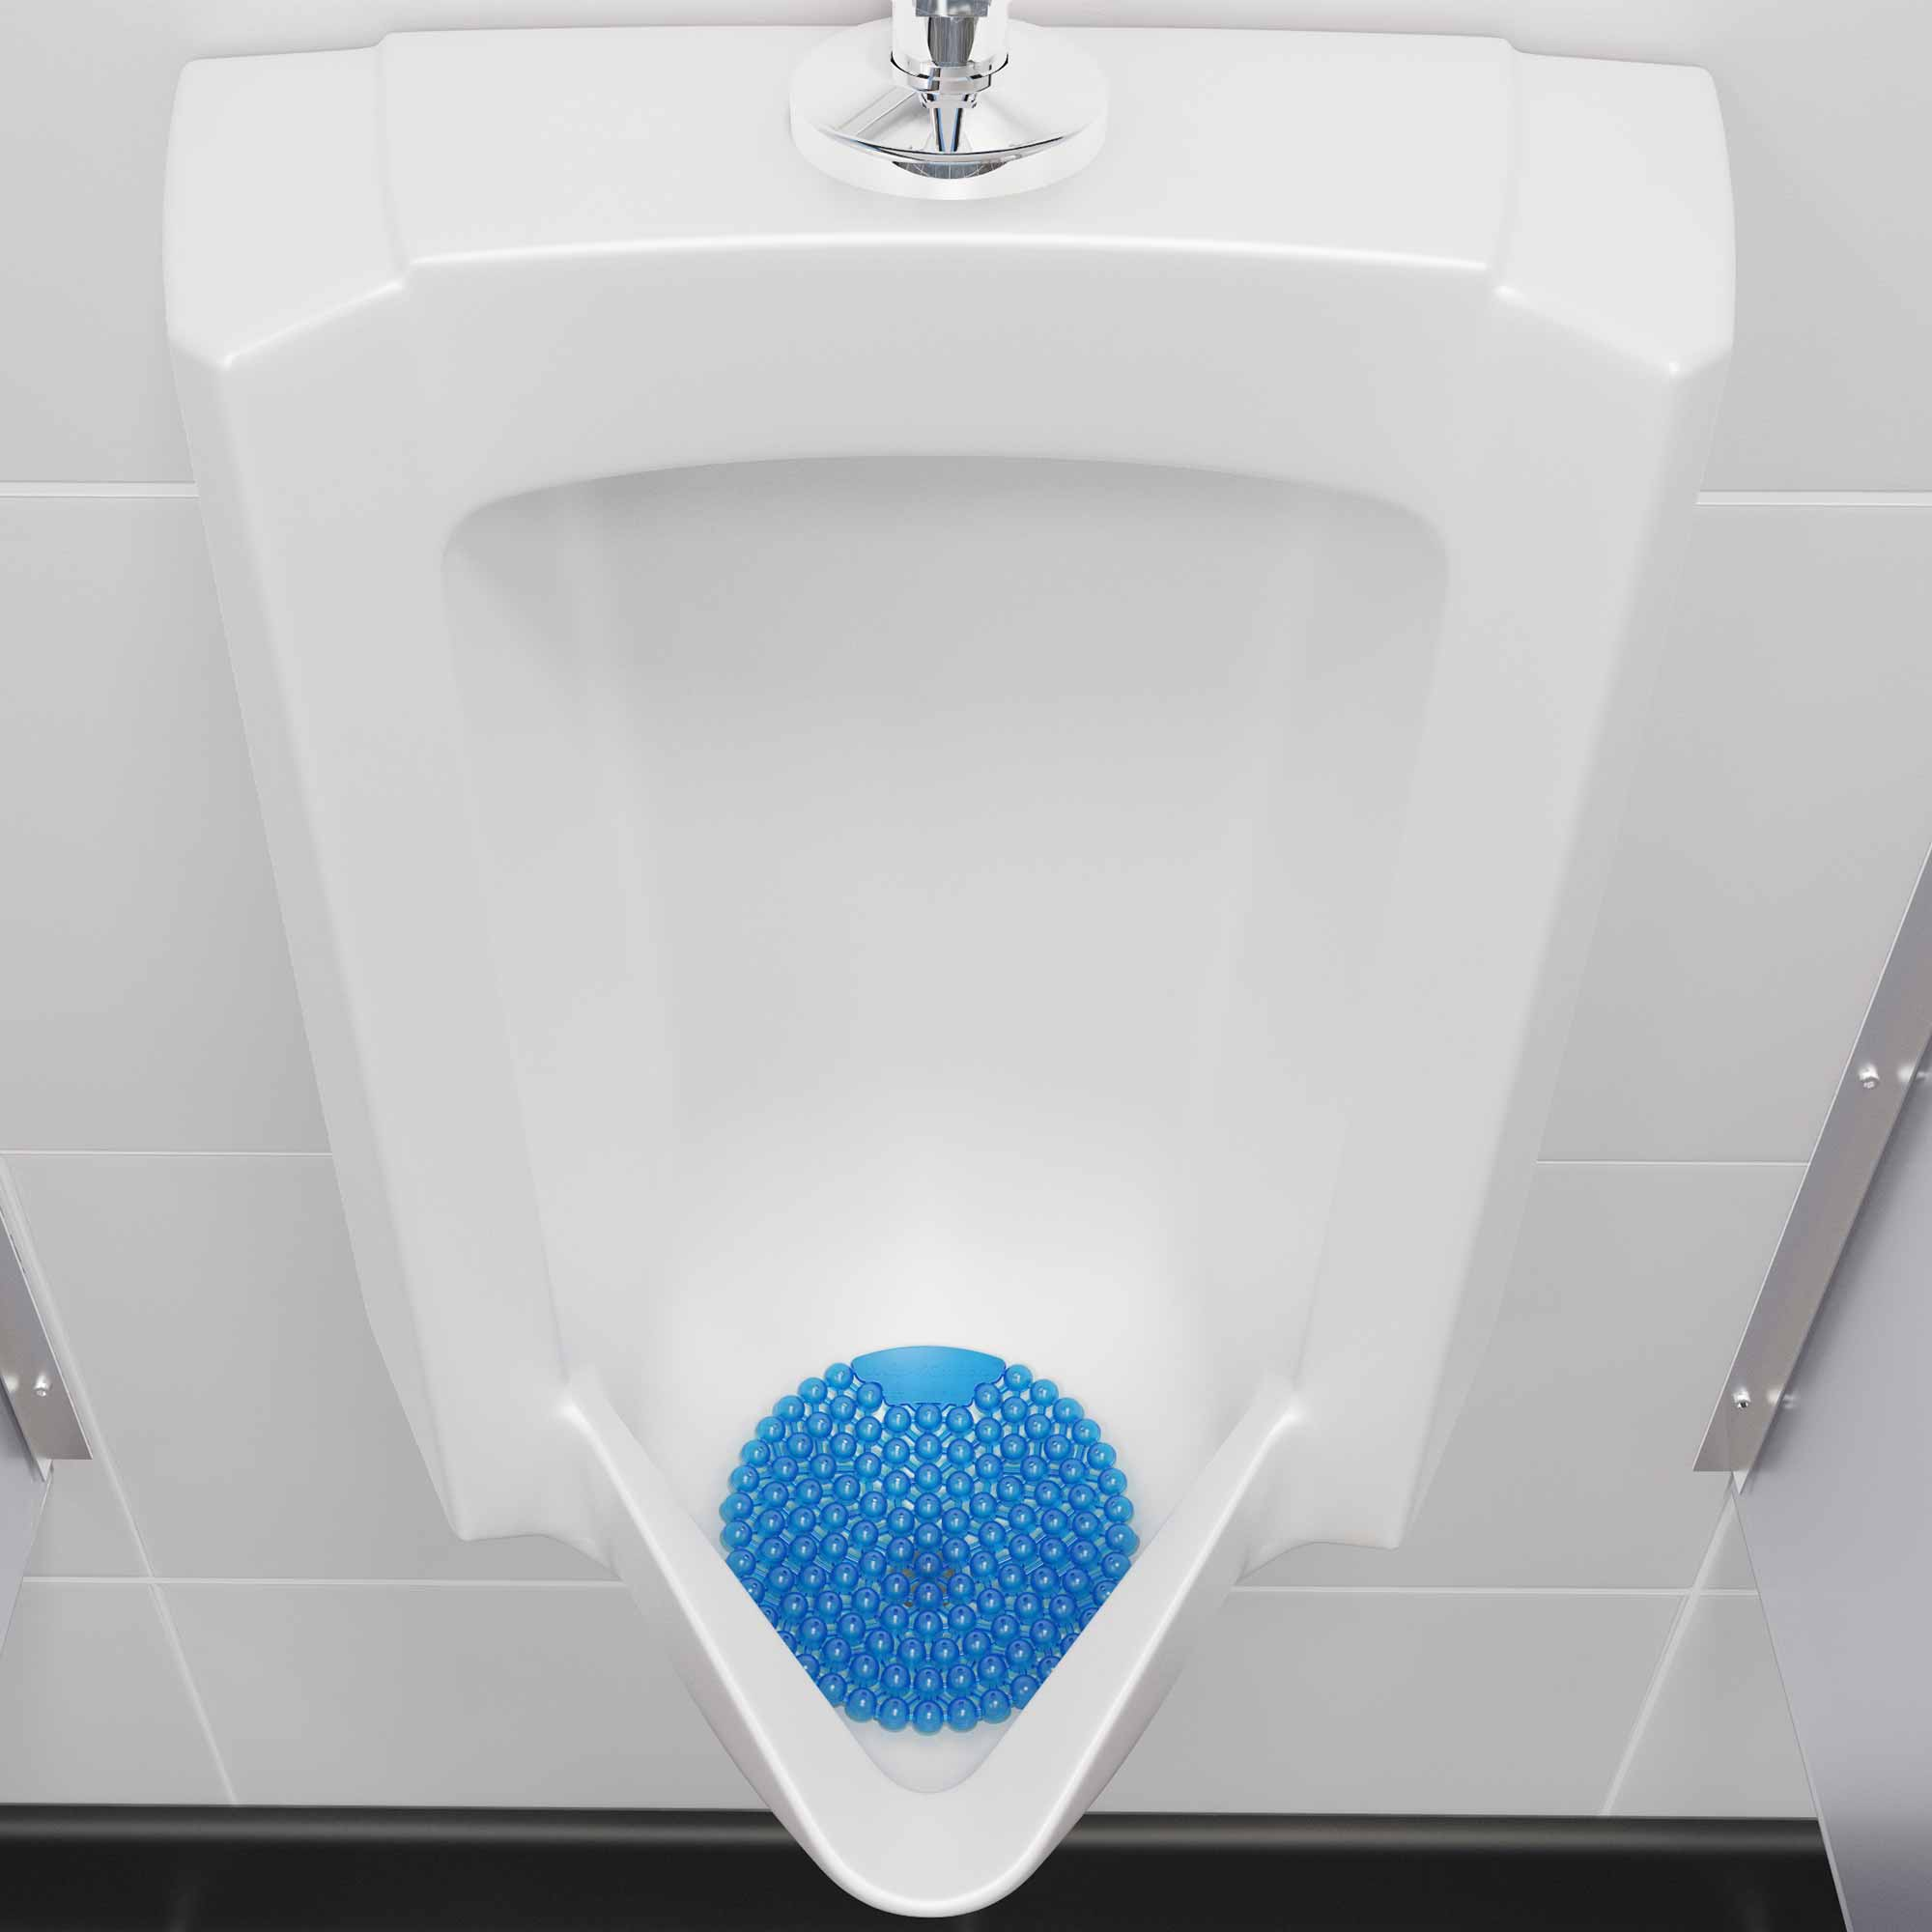 urinal screen - urinal mats - urinal screens